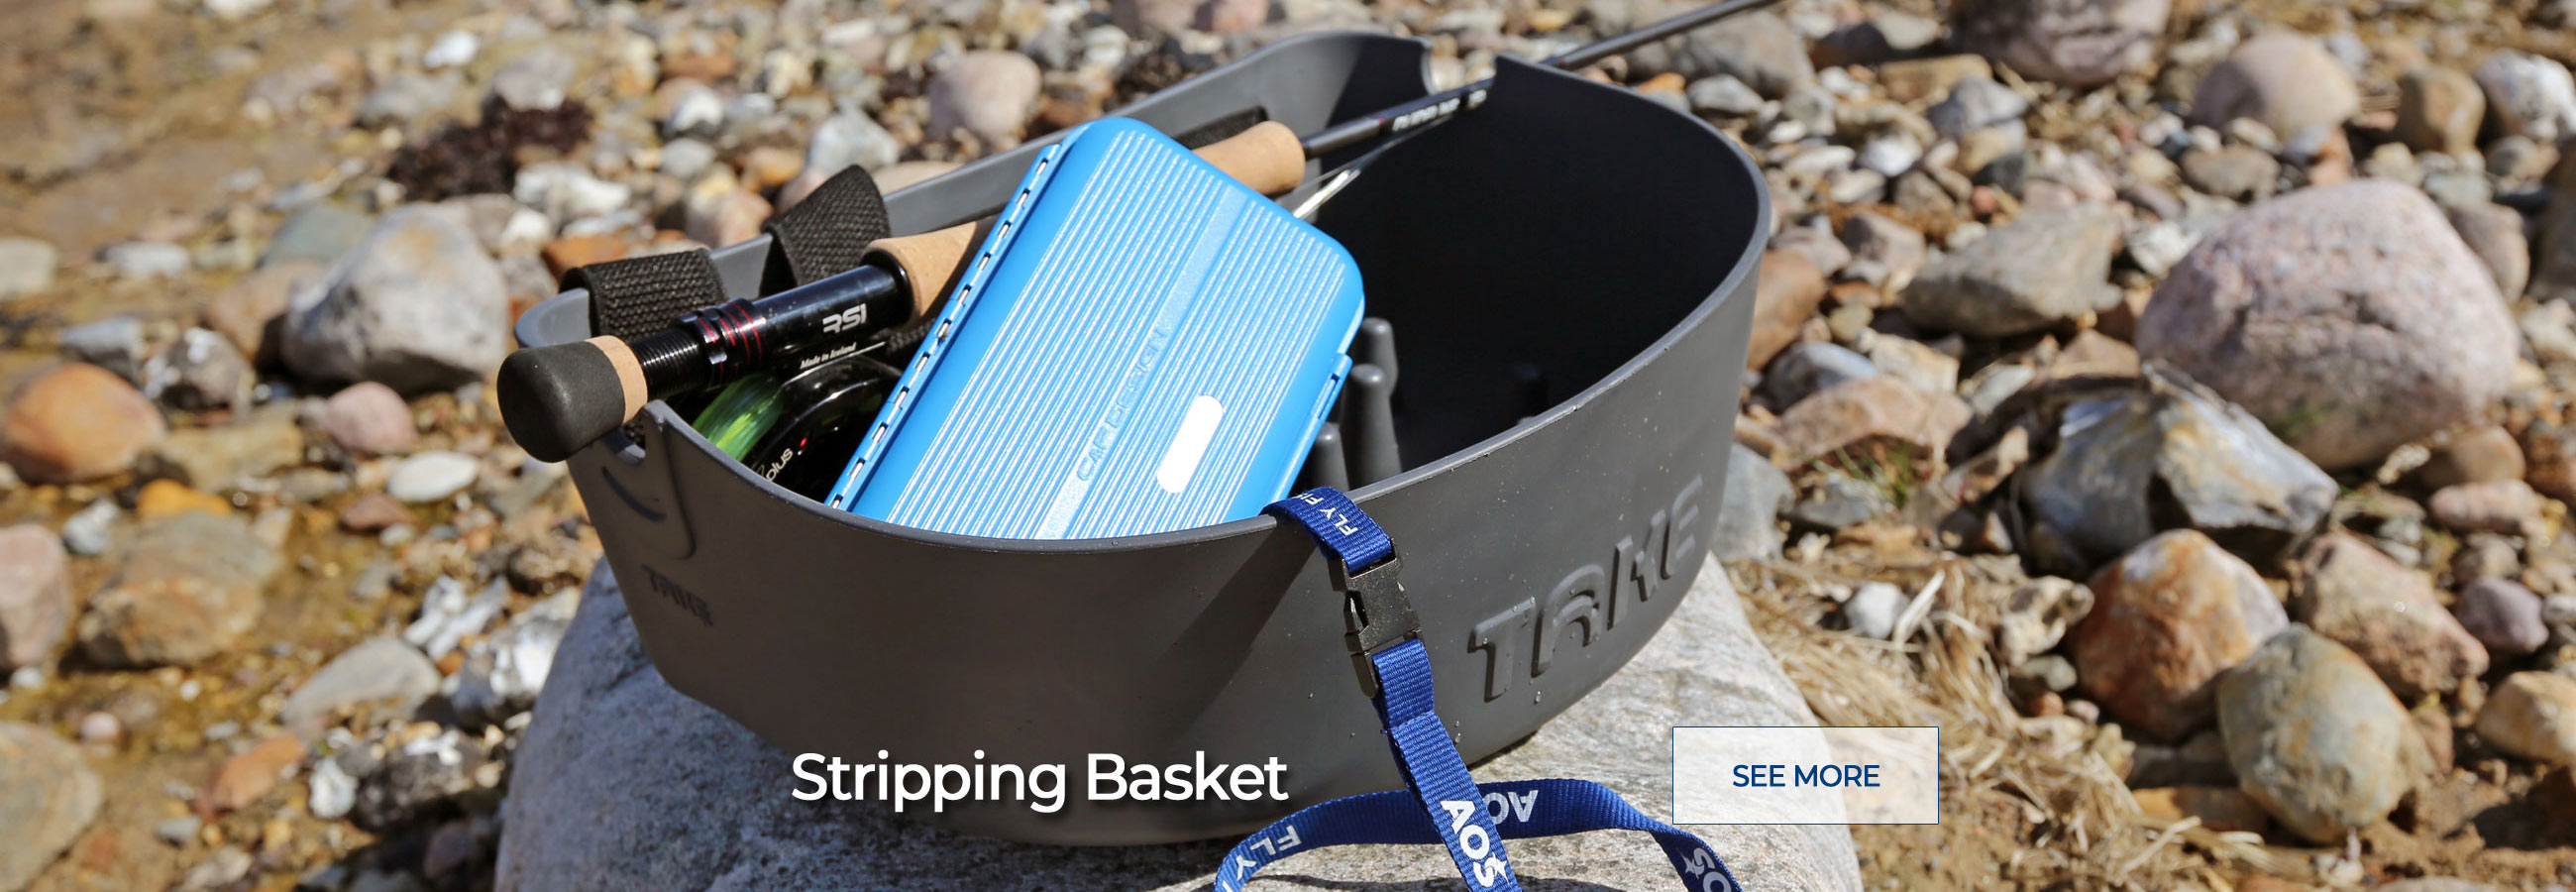 The best Stripping Basket for Fly Fishing! Buy Online - FREE Delivery on orders over € 100